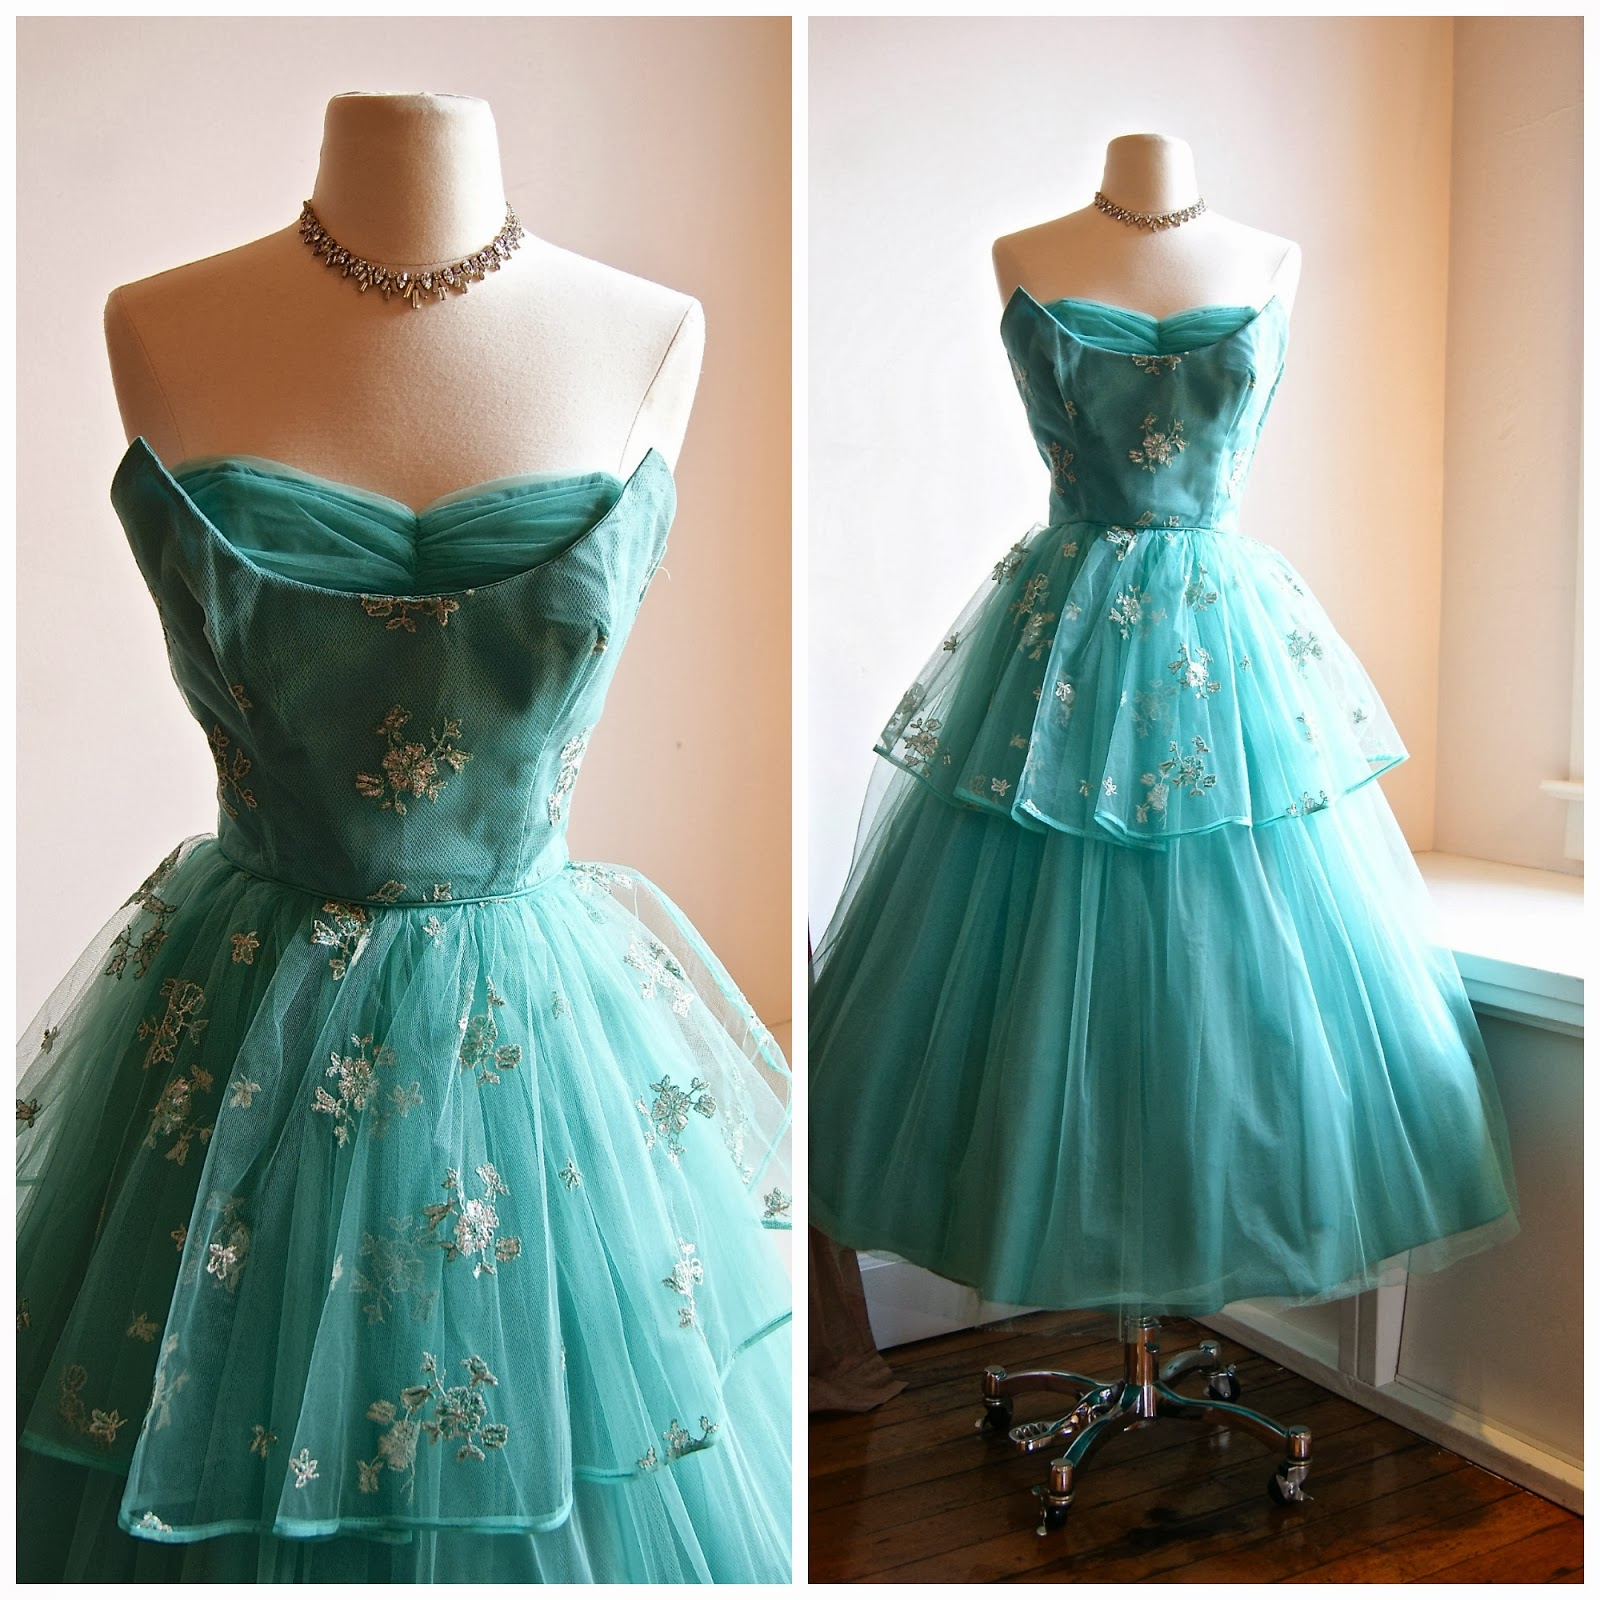 1950s Emma Domb Sweetheart Dress Waist 28 Available To Purchase Here